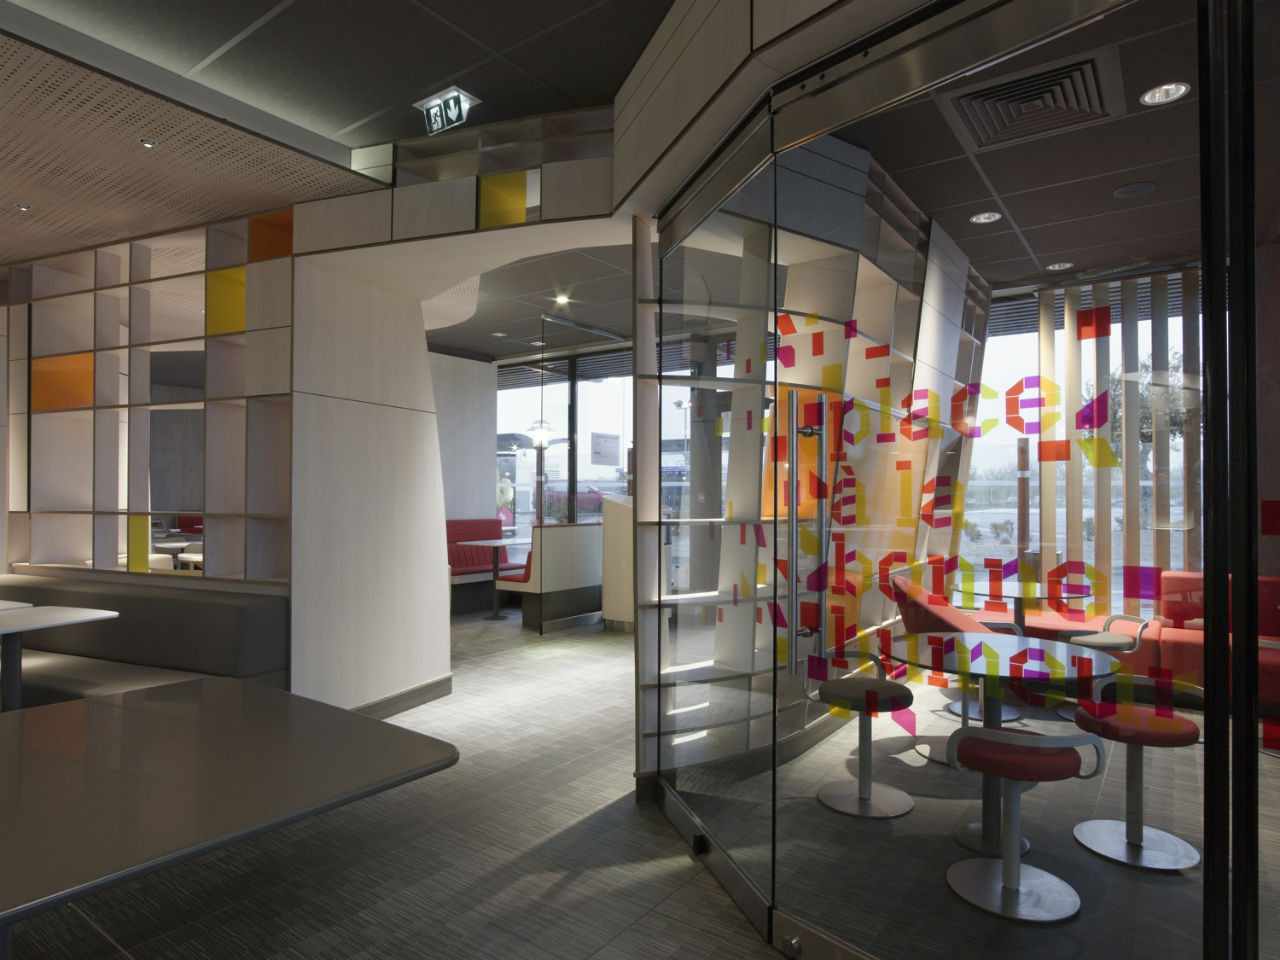 Mcdonalds Interior Design mcdonald's interiors in france / patrick norguet | archdaily